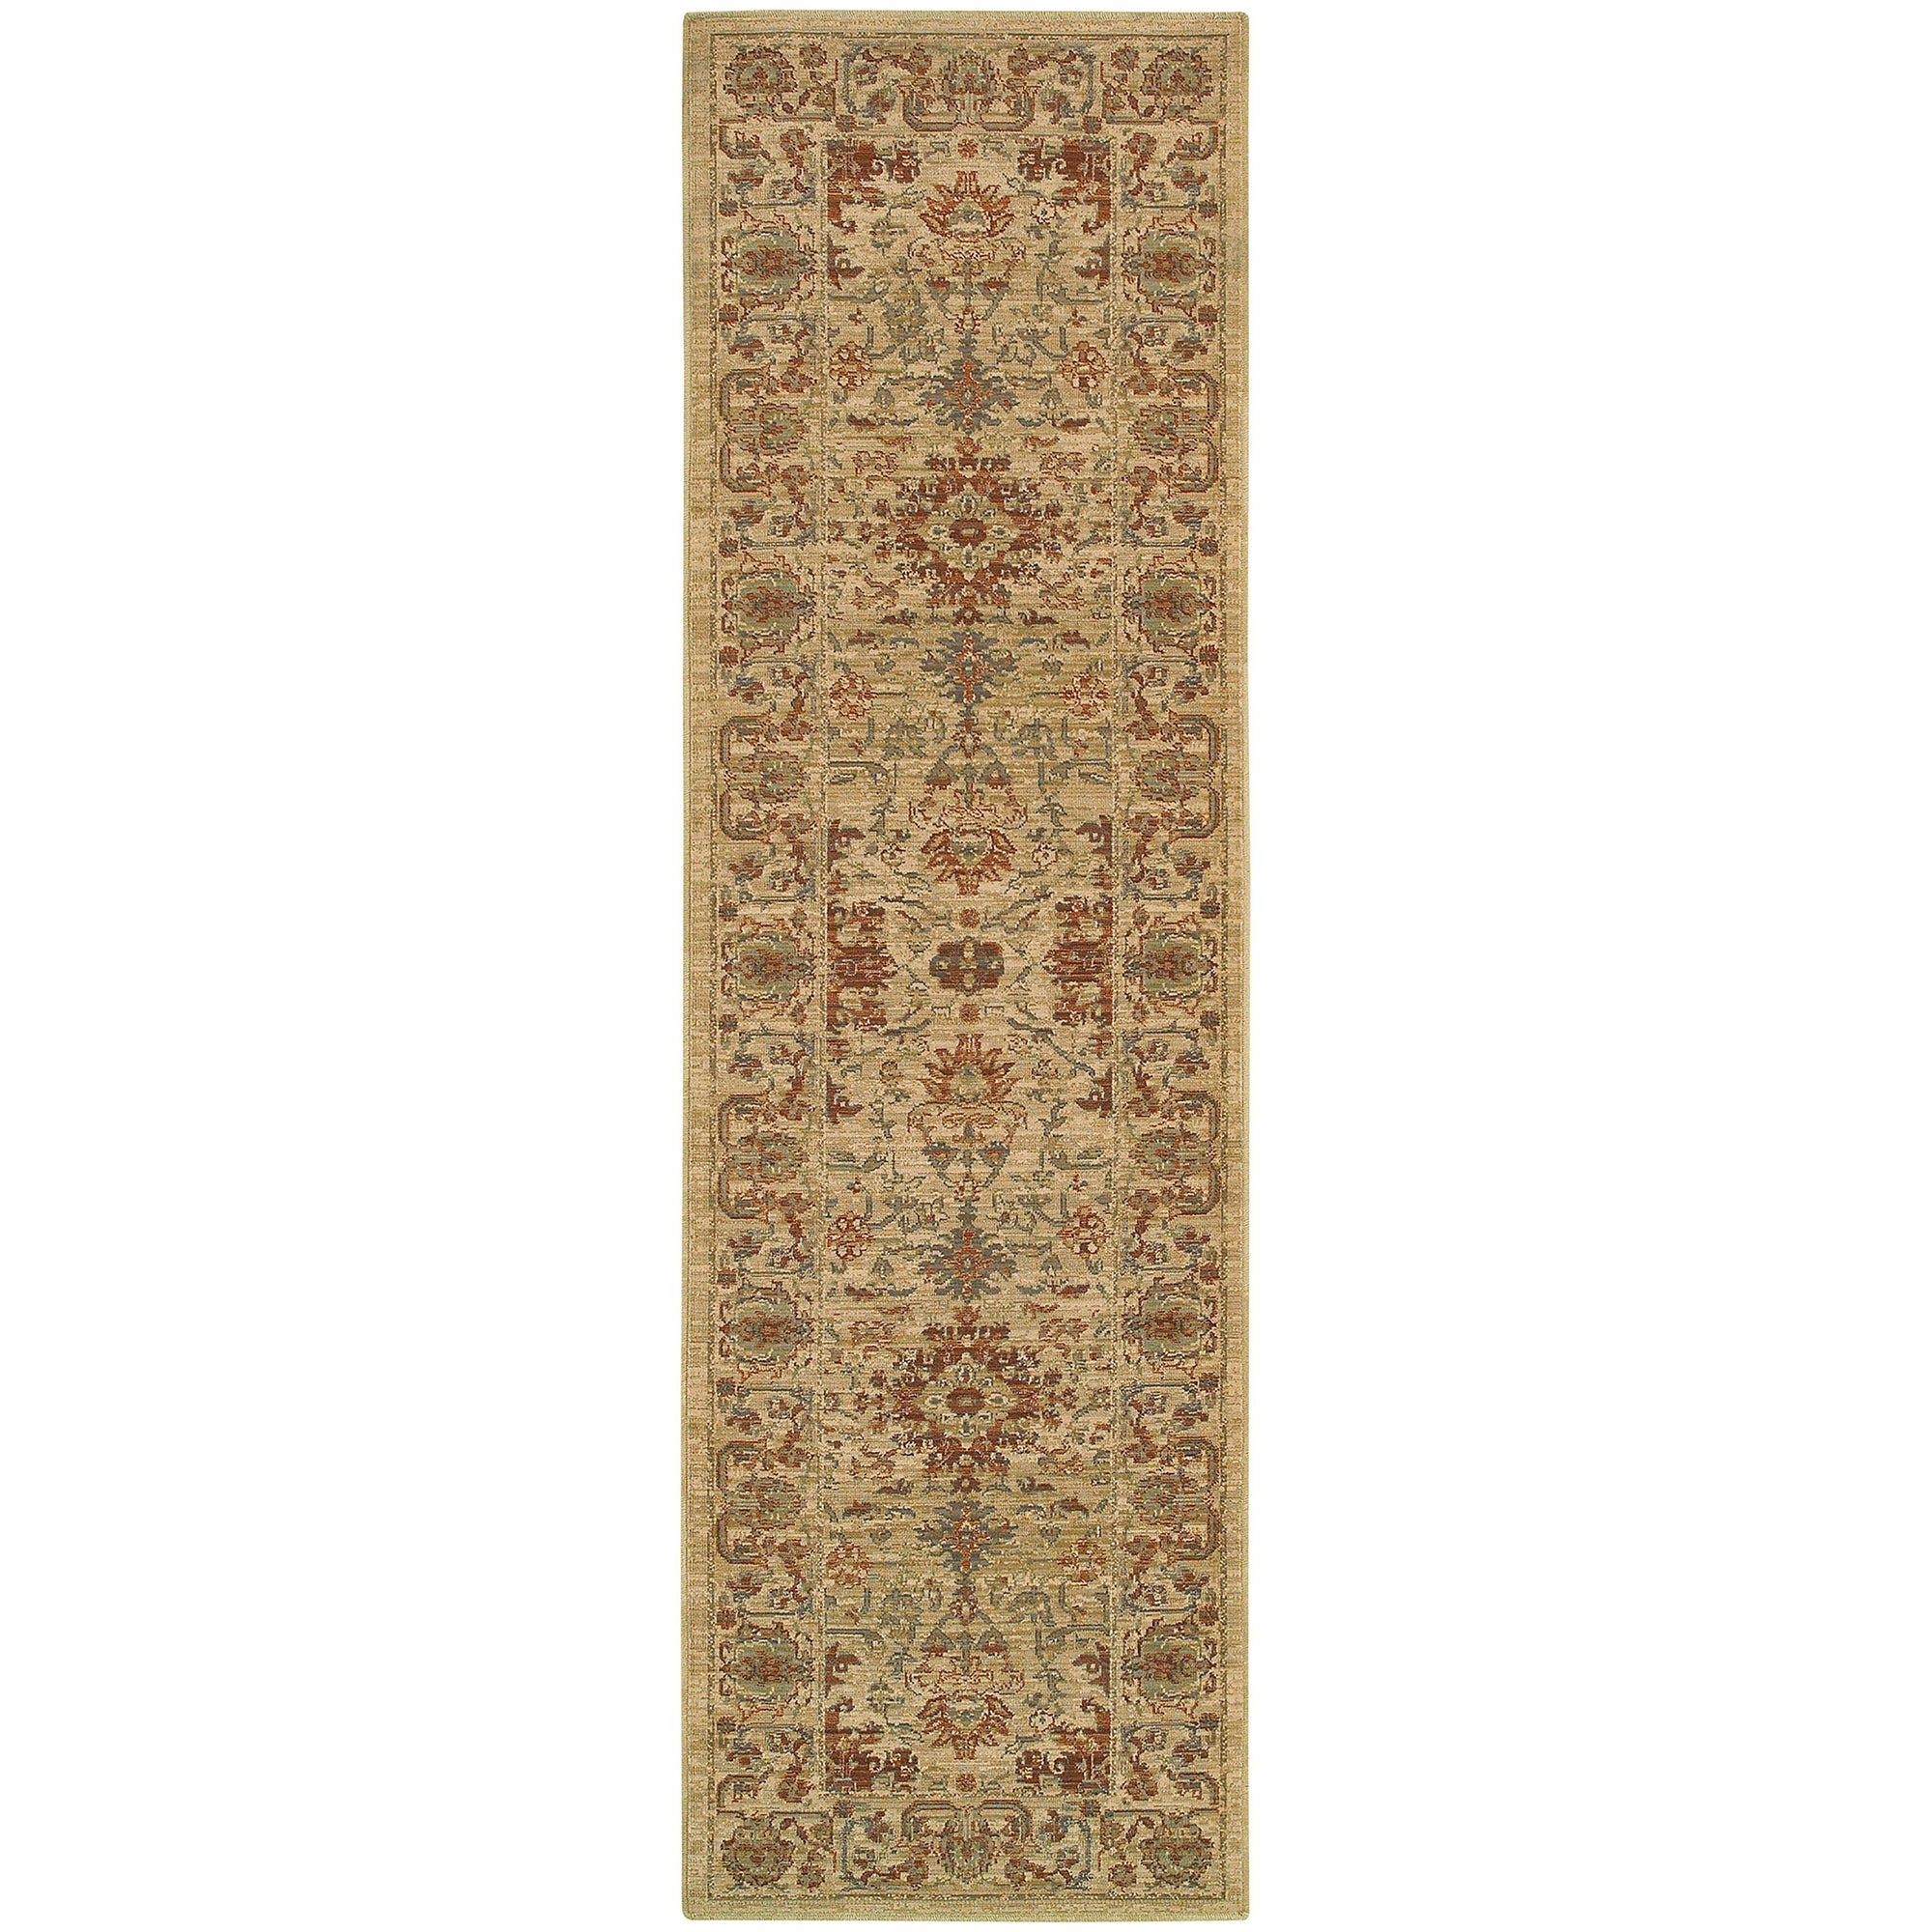 "Tommy Bahama Home Vintage 5992j Beige/Multi-Area Rug-Tommy Bahama Home-1'10"" X 3' 3""-The Rug Truck"